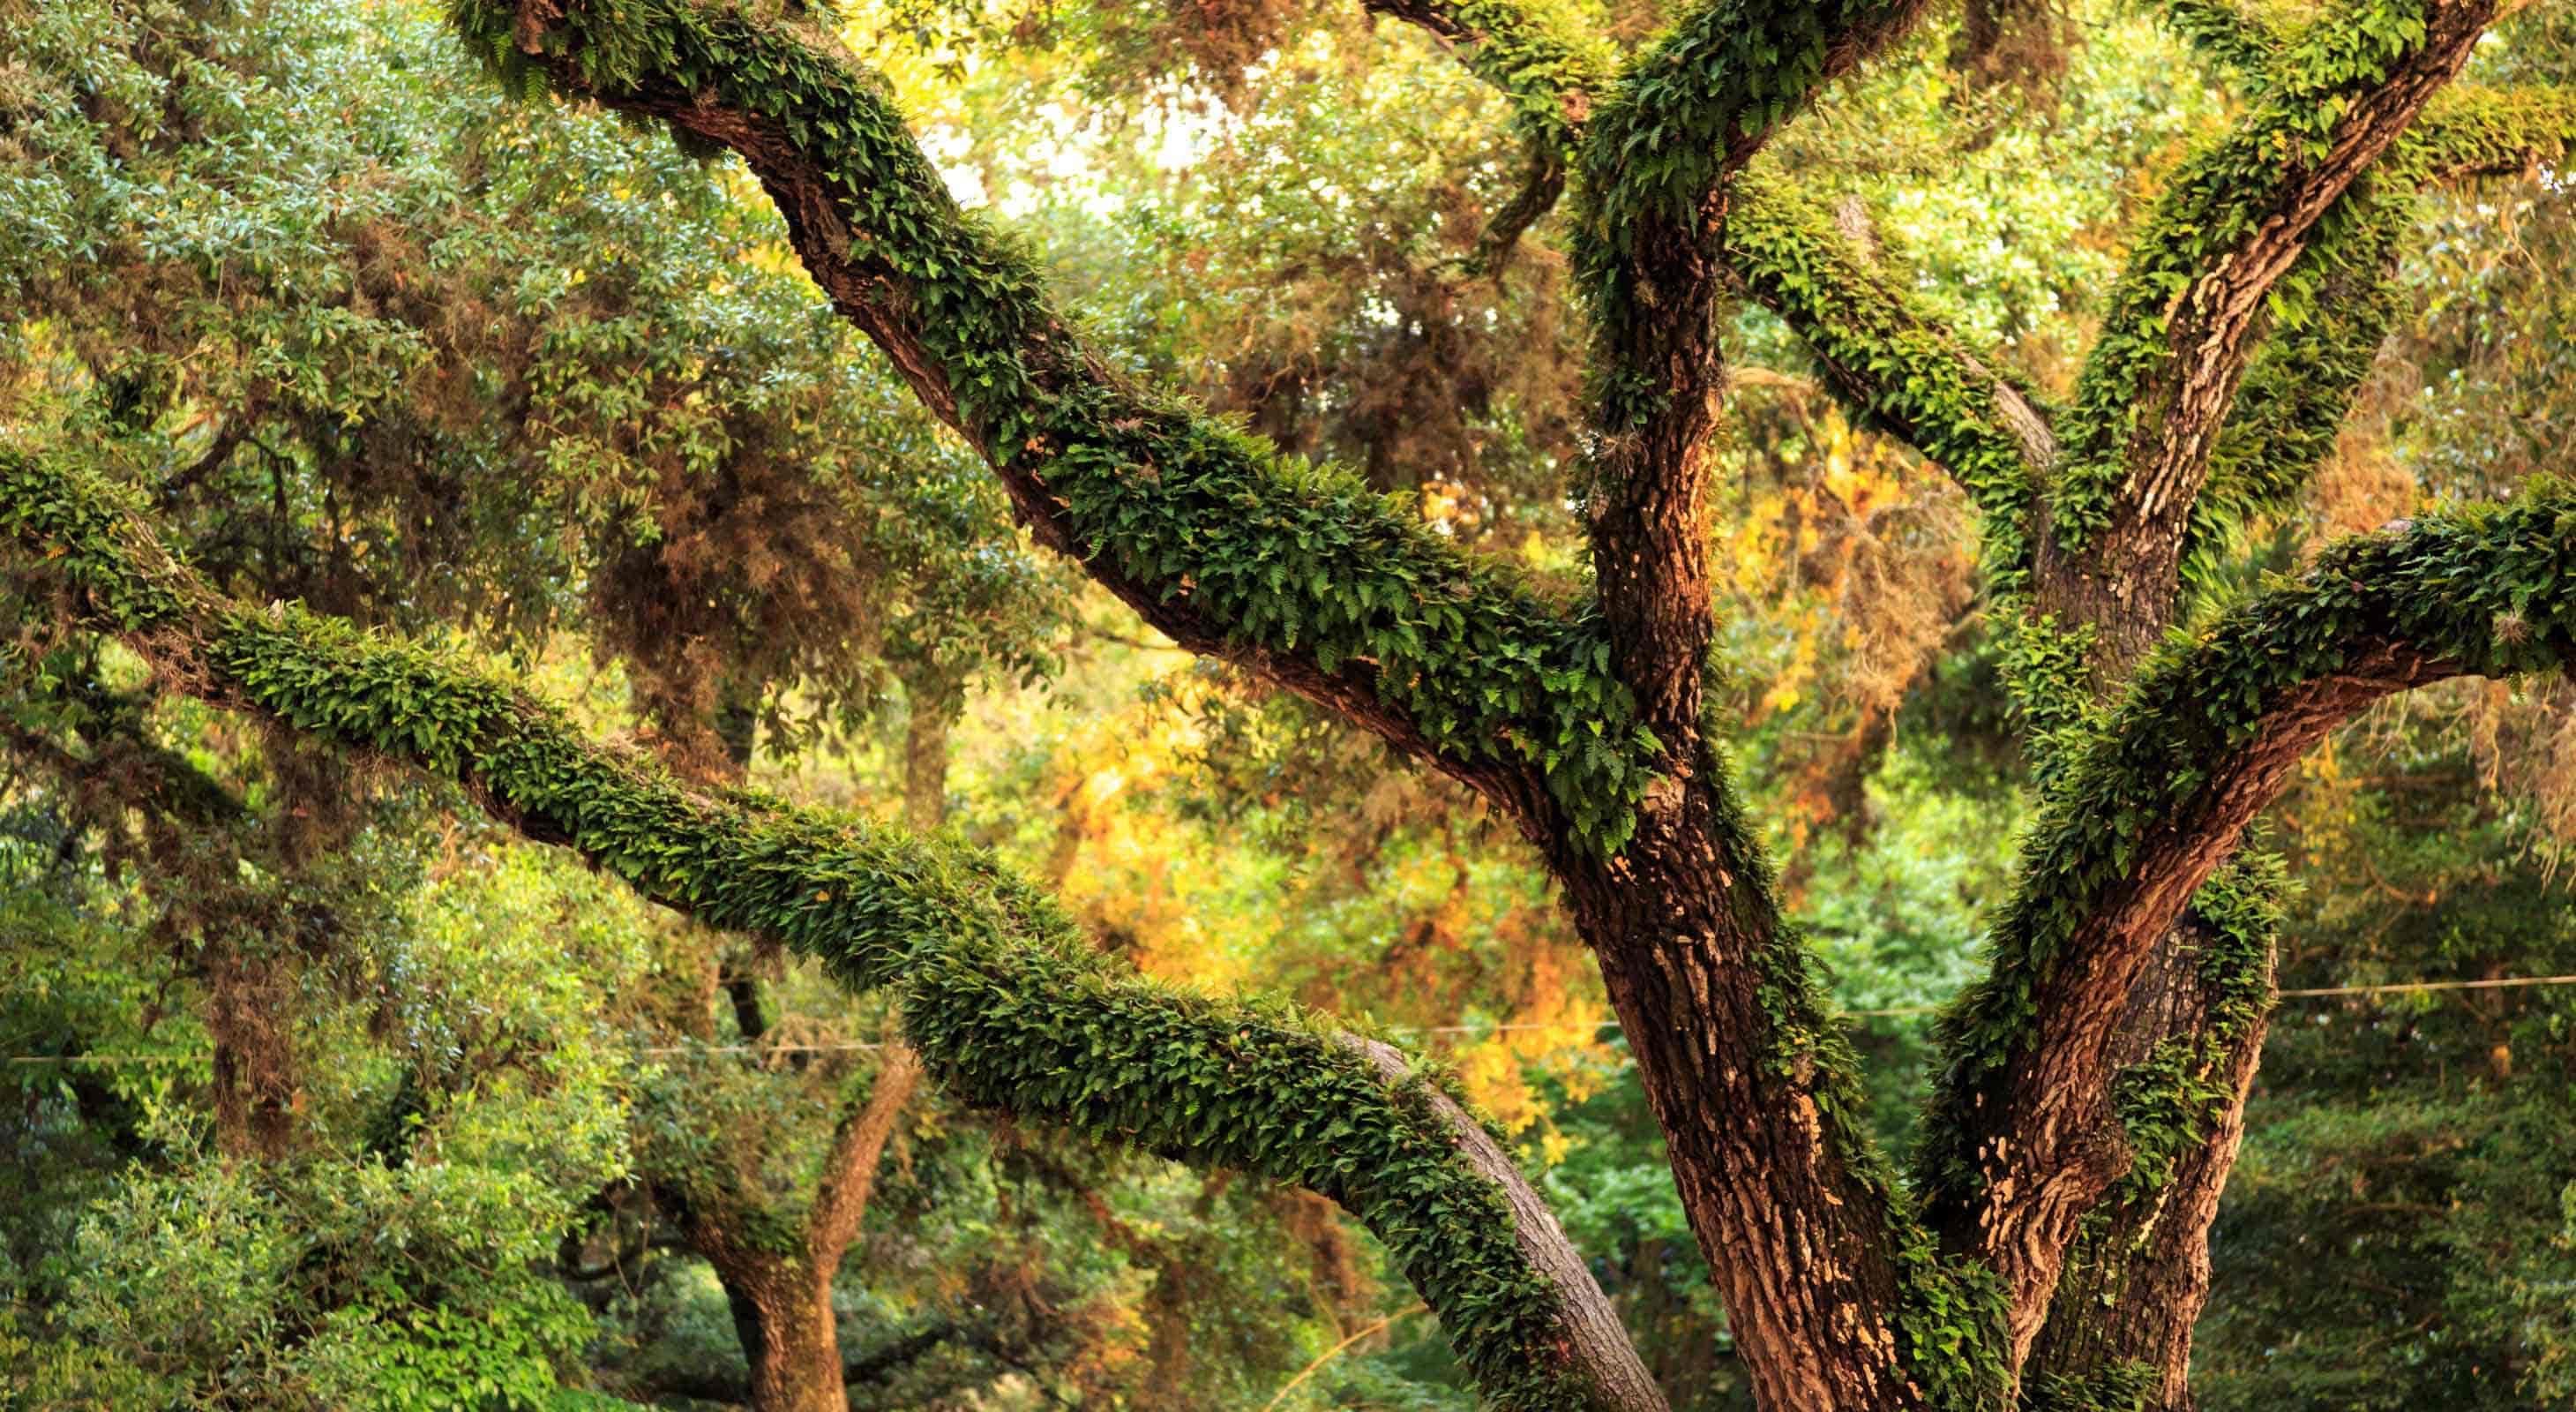 Fern covered branches of a large oak tree at BlissWood Ranch